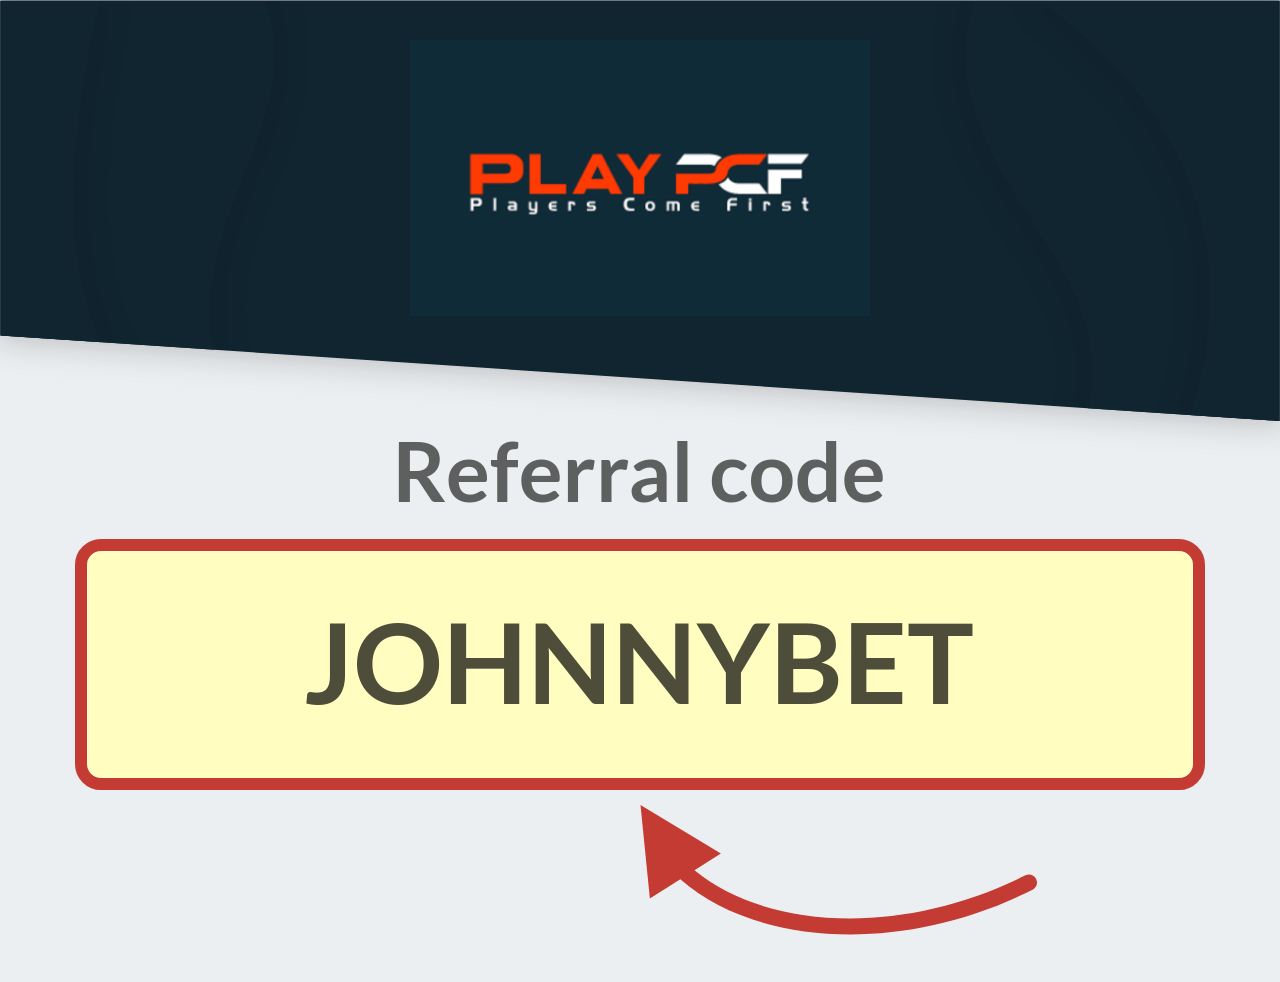 Play PCF Referral Code